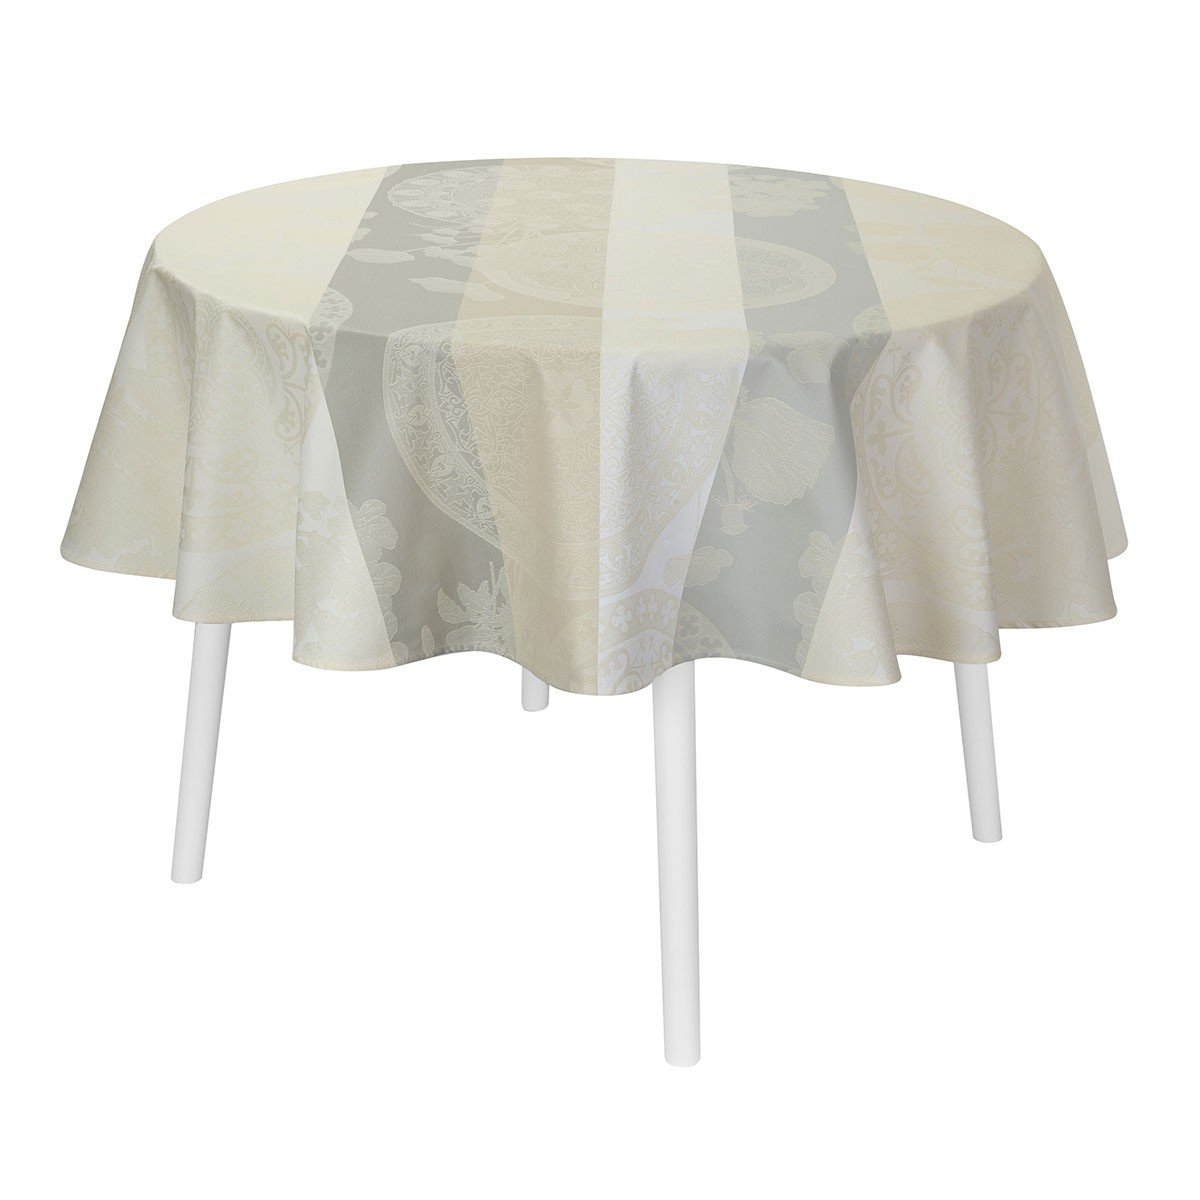 Le Jacquard Français Table Linen Fleurs Gourmandes Chalk Fig Linens Tablecloth